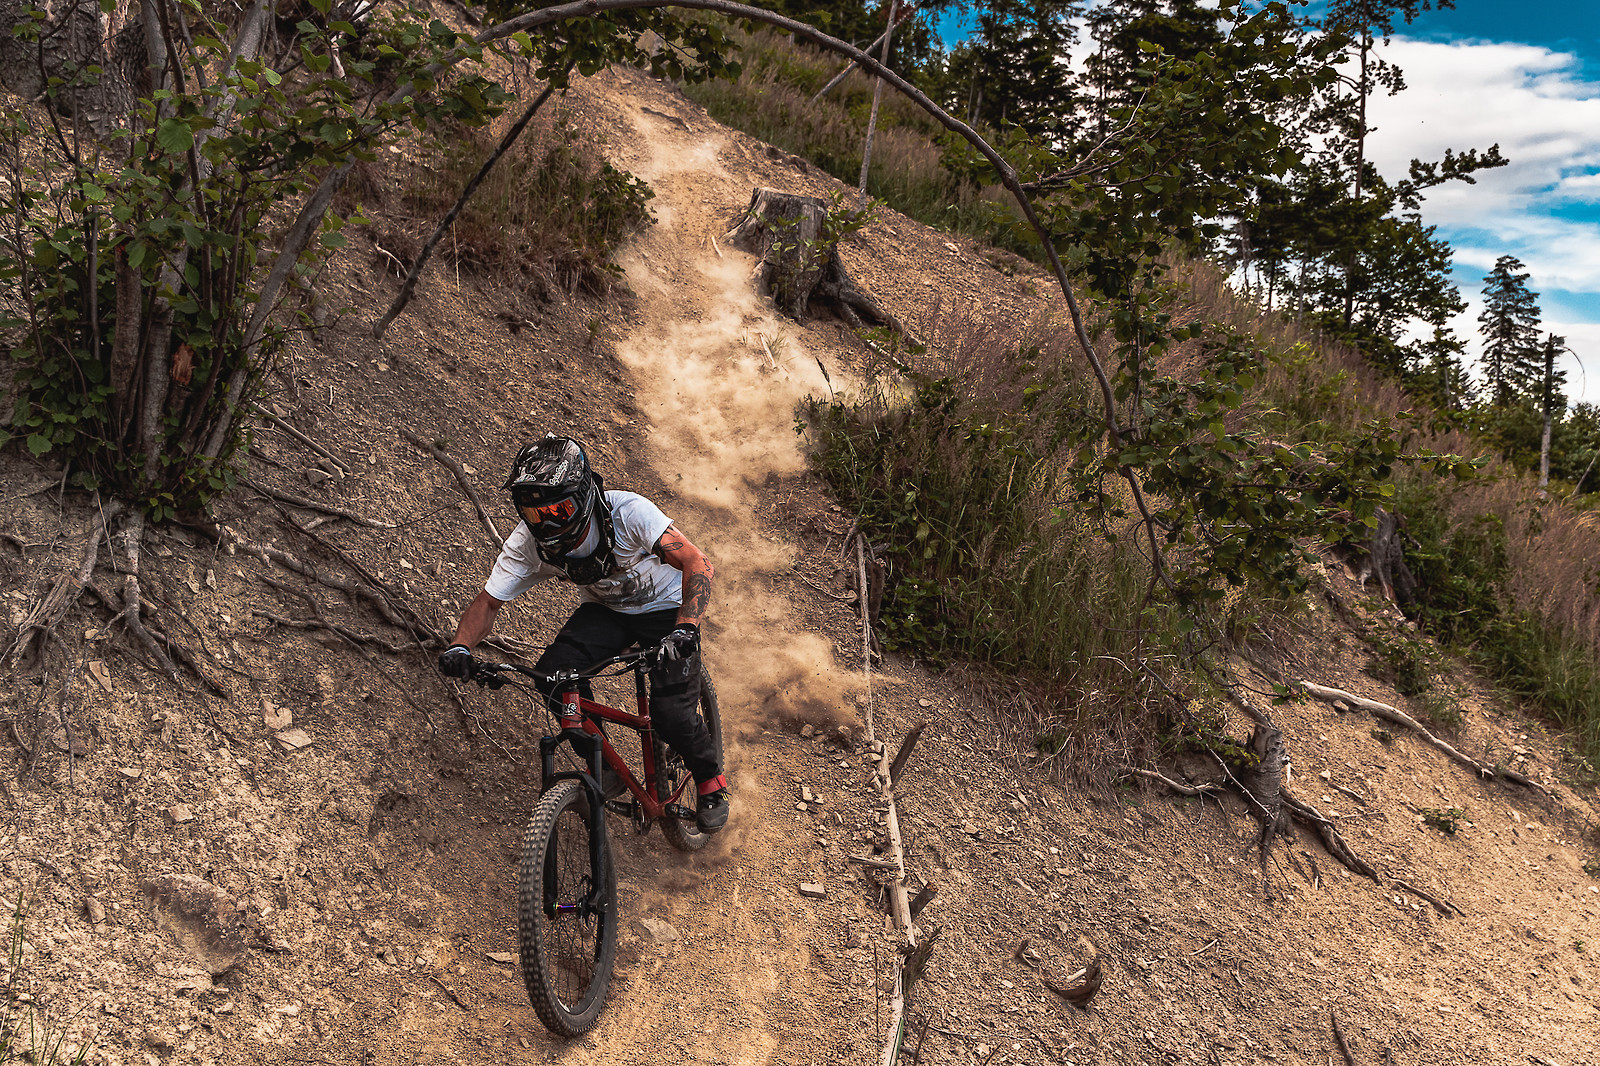 dusty krbl - Banan - Mountain Biking Pictures - Vital MTB